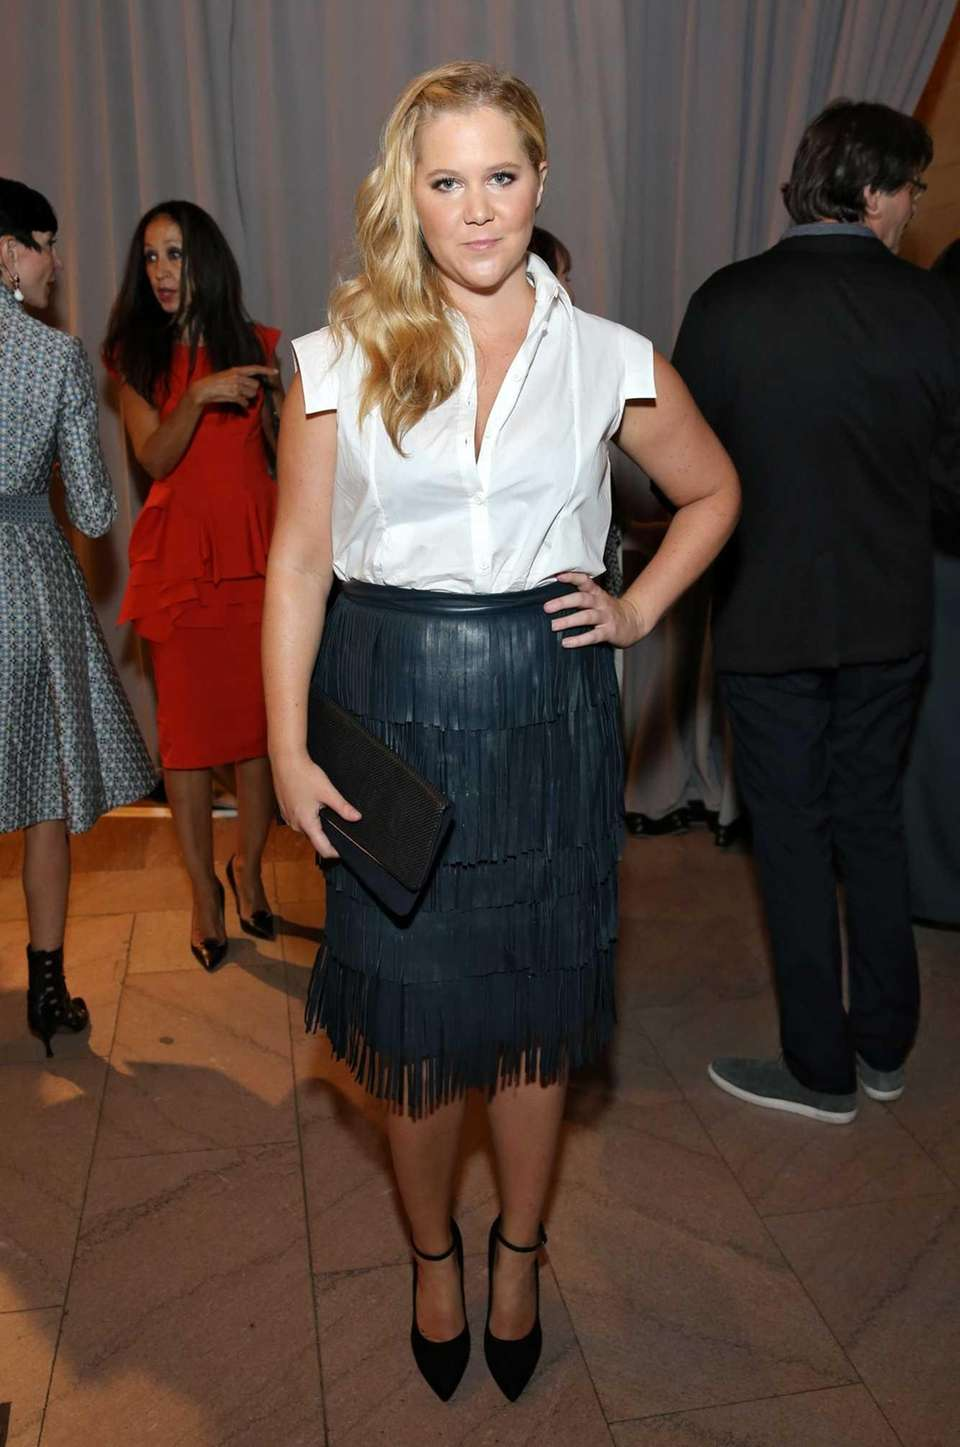 Actress and comedian Amy Schumer backstage at the